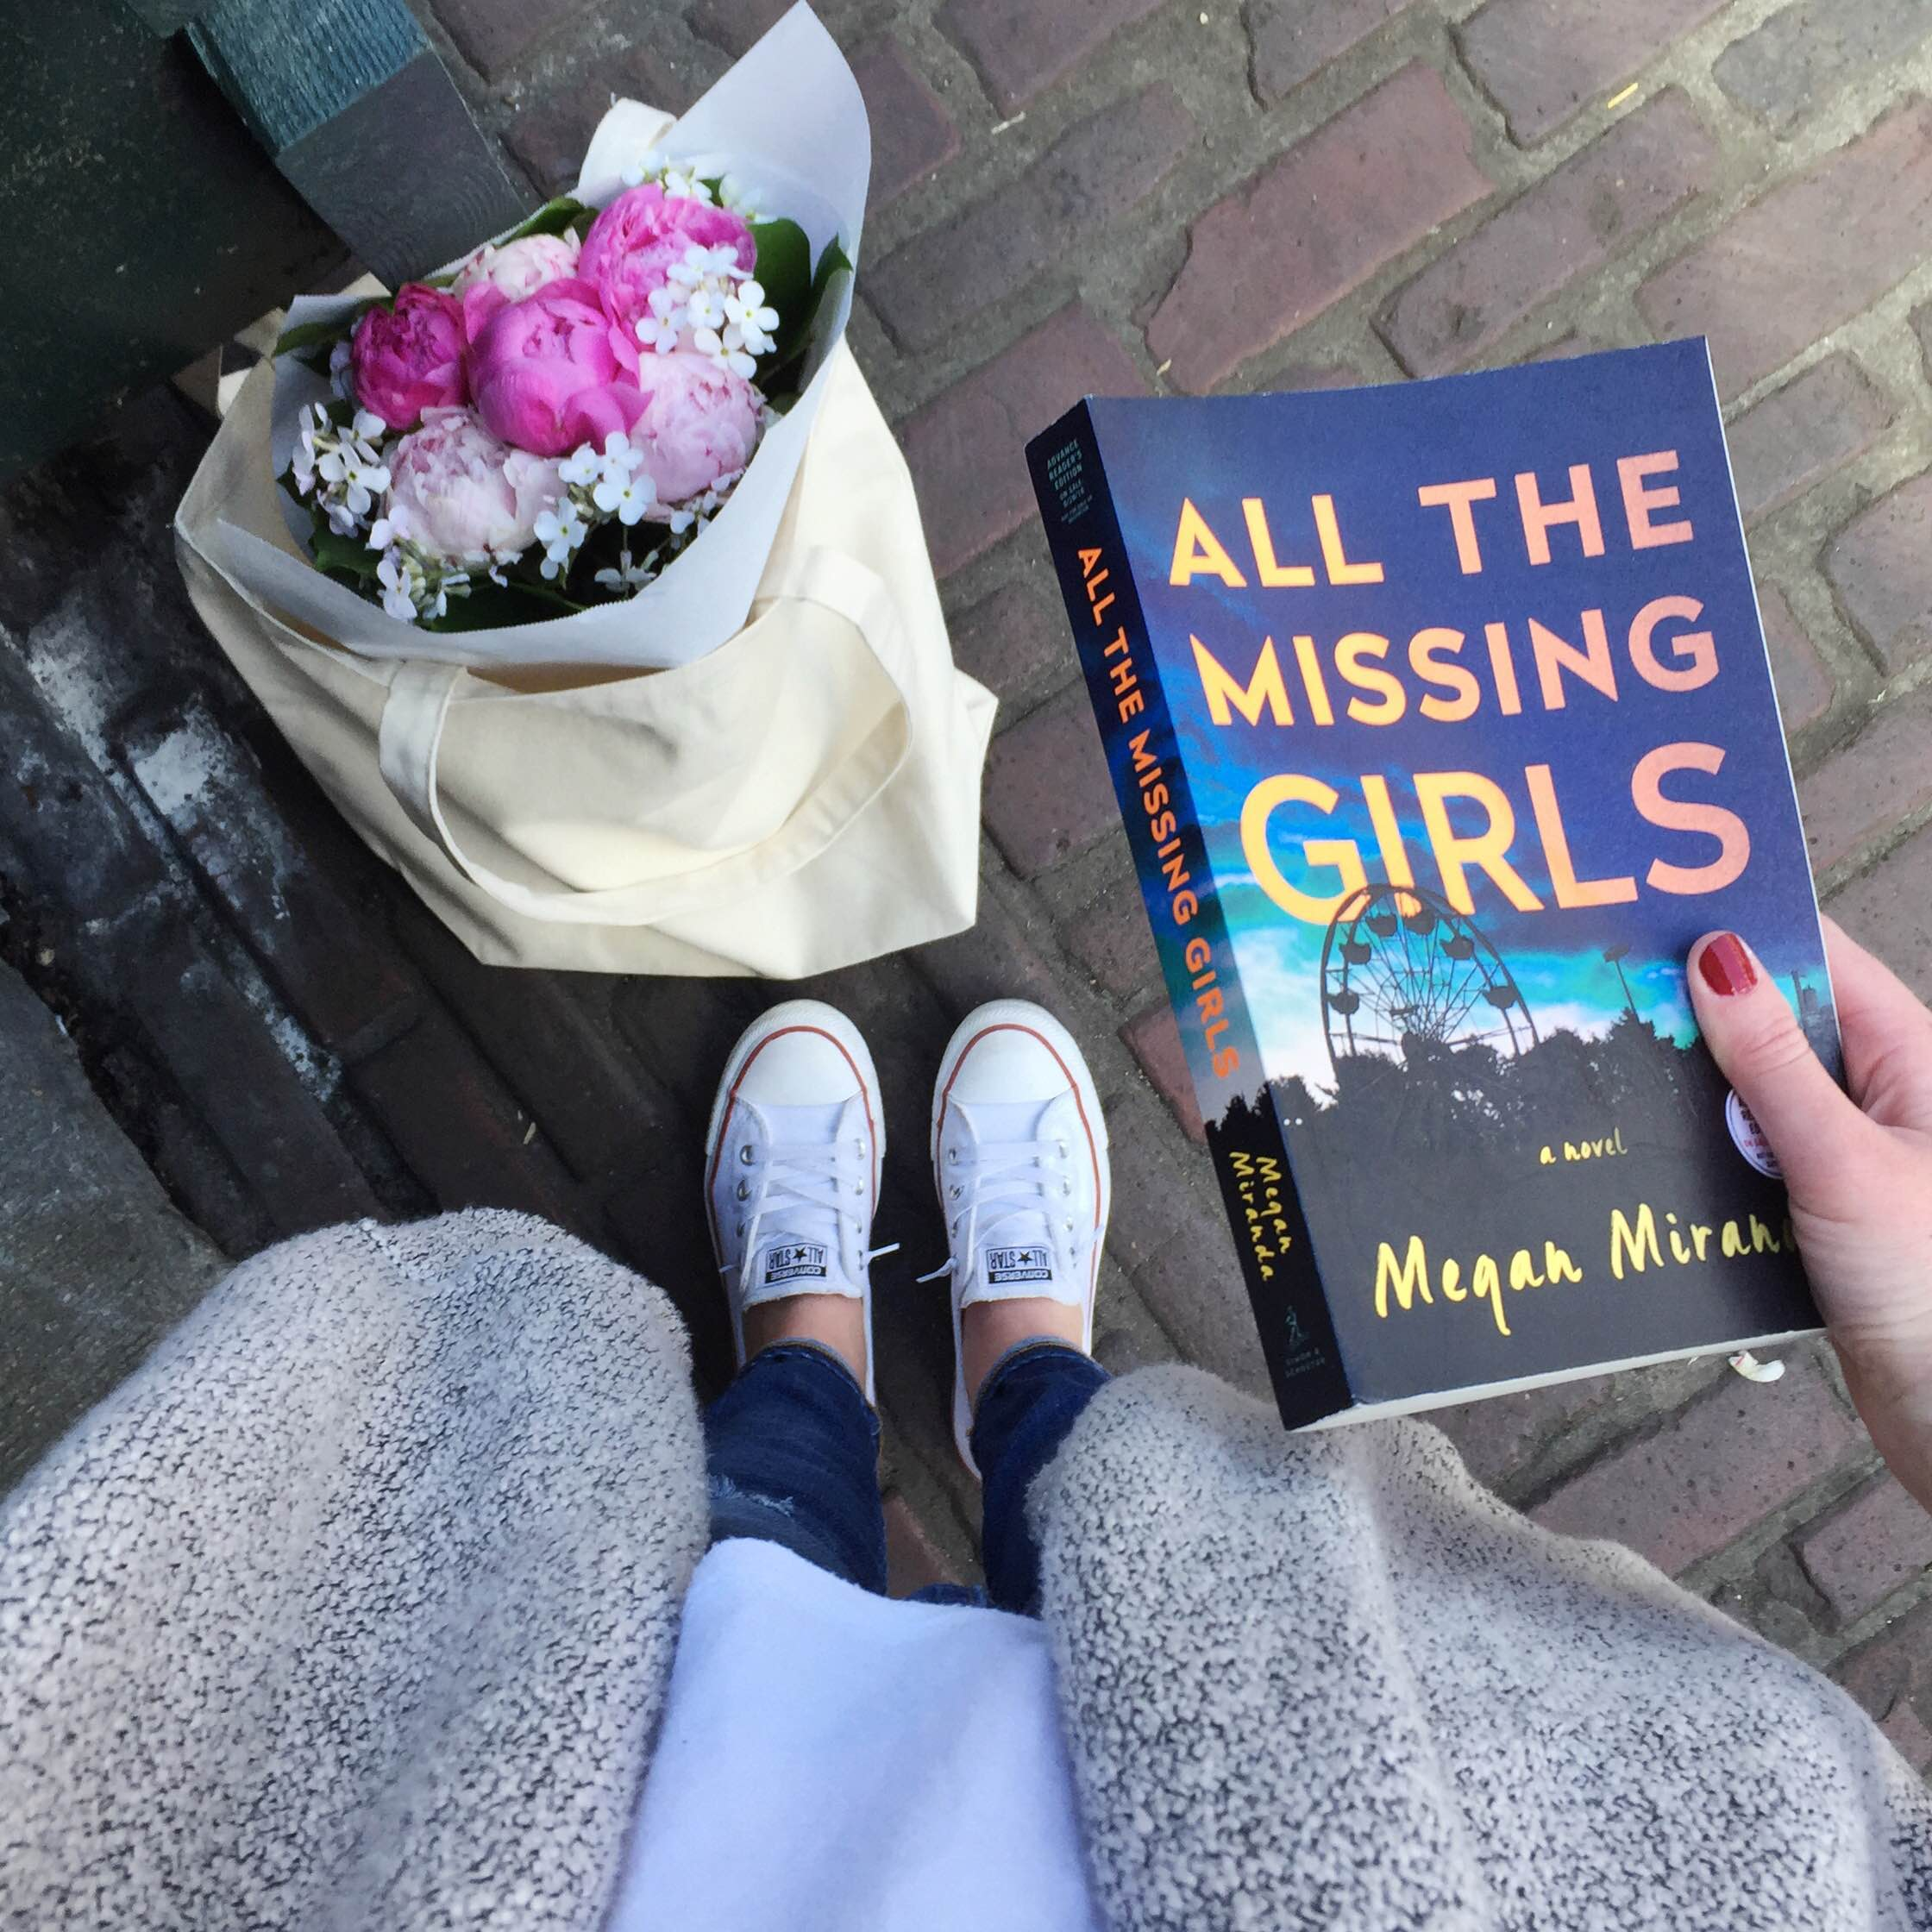 All The Missing Girls by Megan Miranda Dream by Day